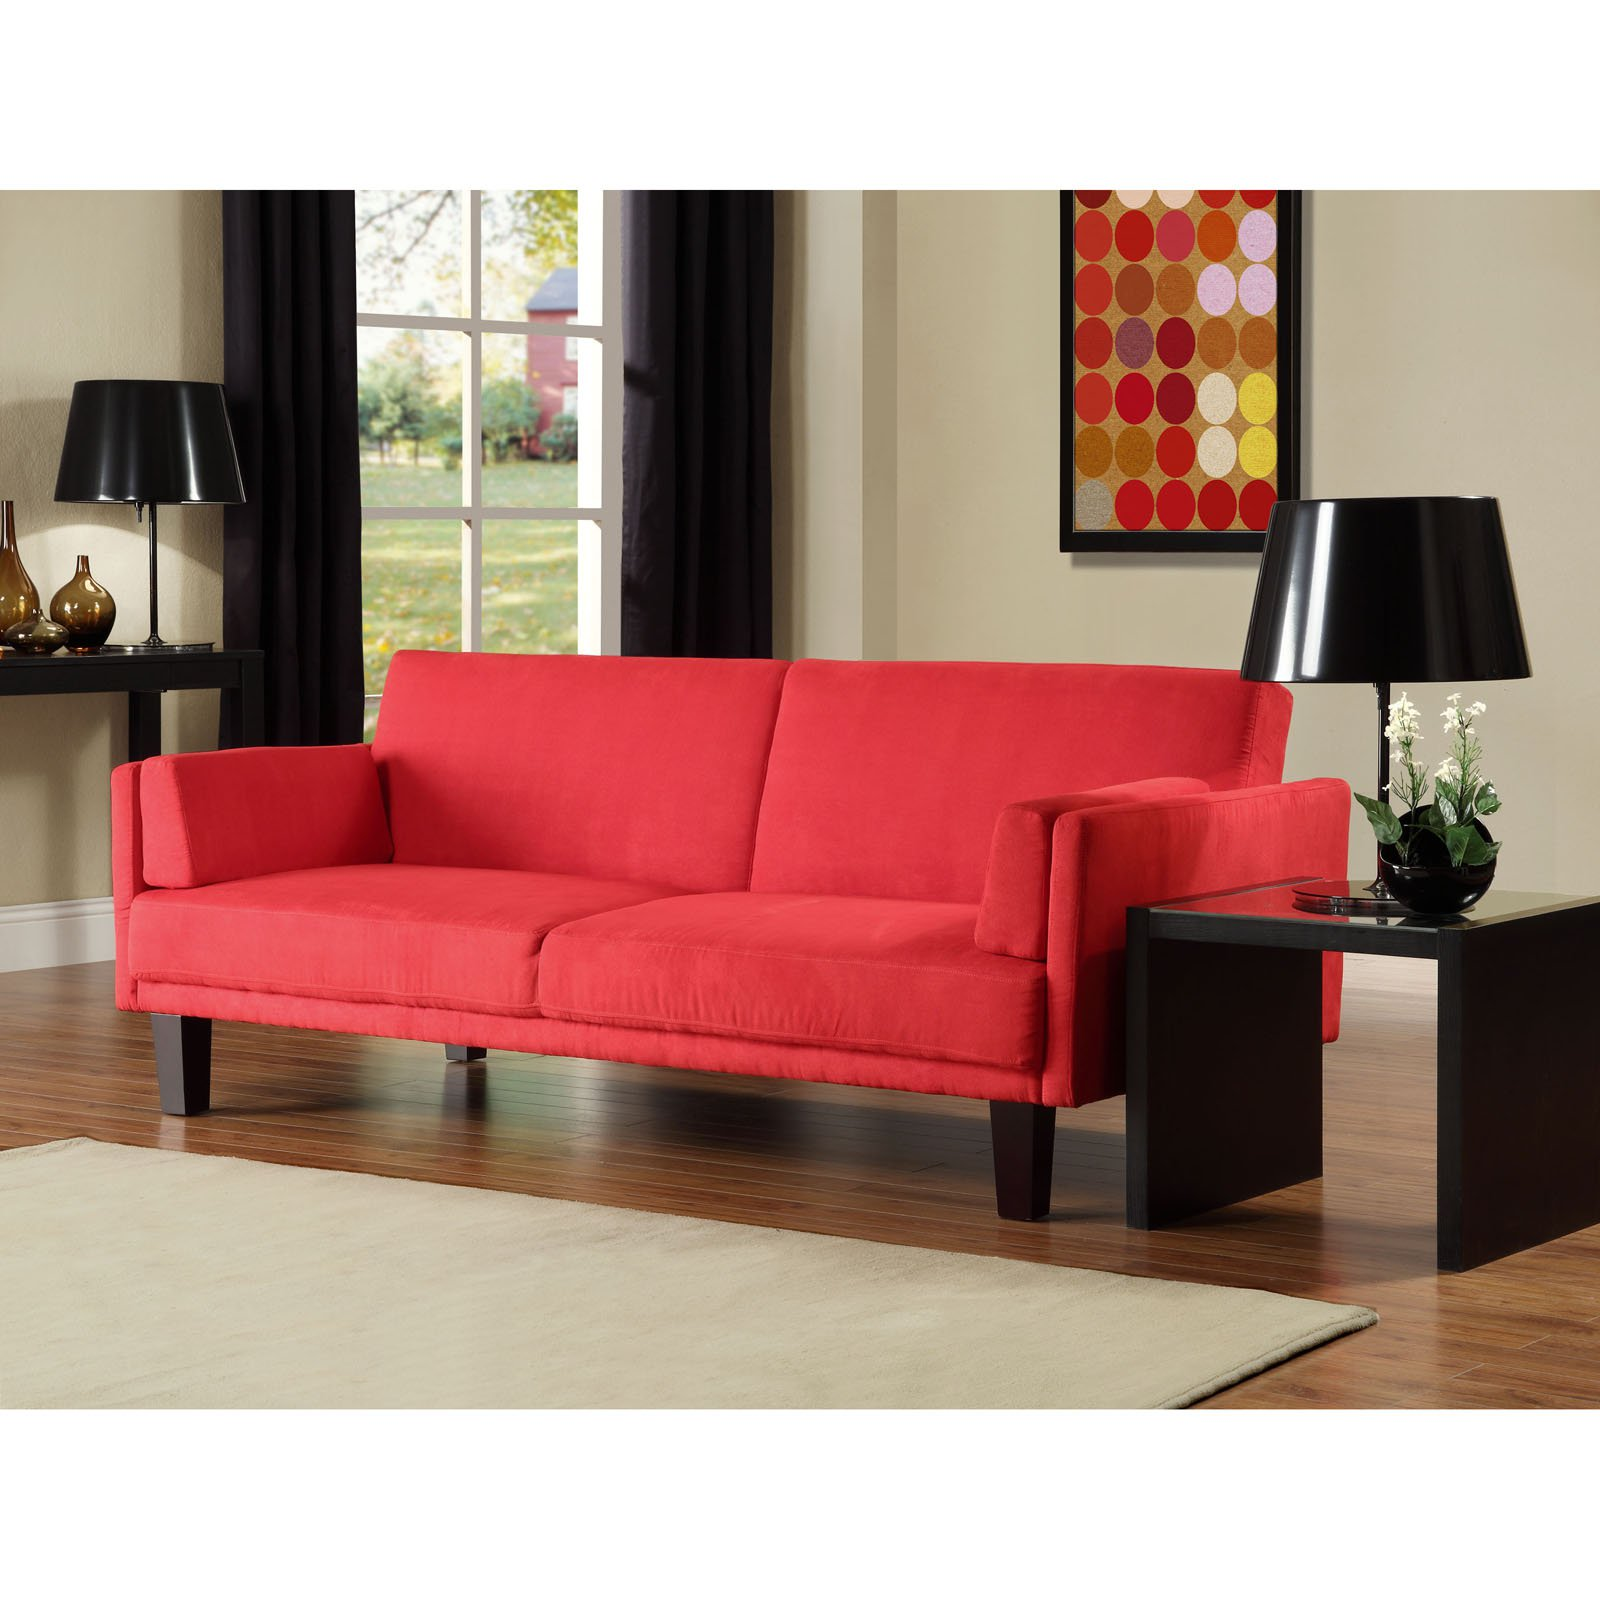 Barcelona Convertible Futon Sofa Bed And Lounger With Pillows, Multiple  Colors - Walmart